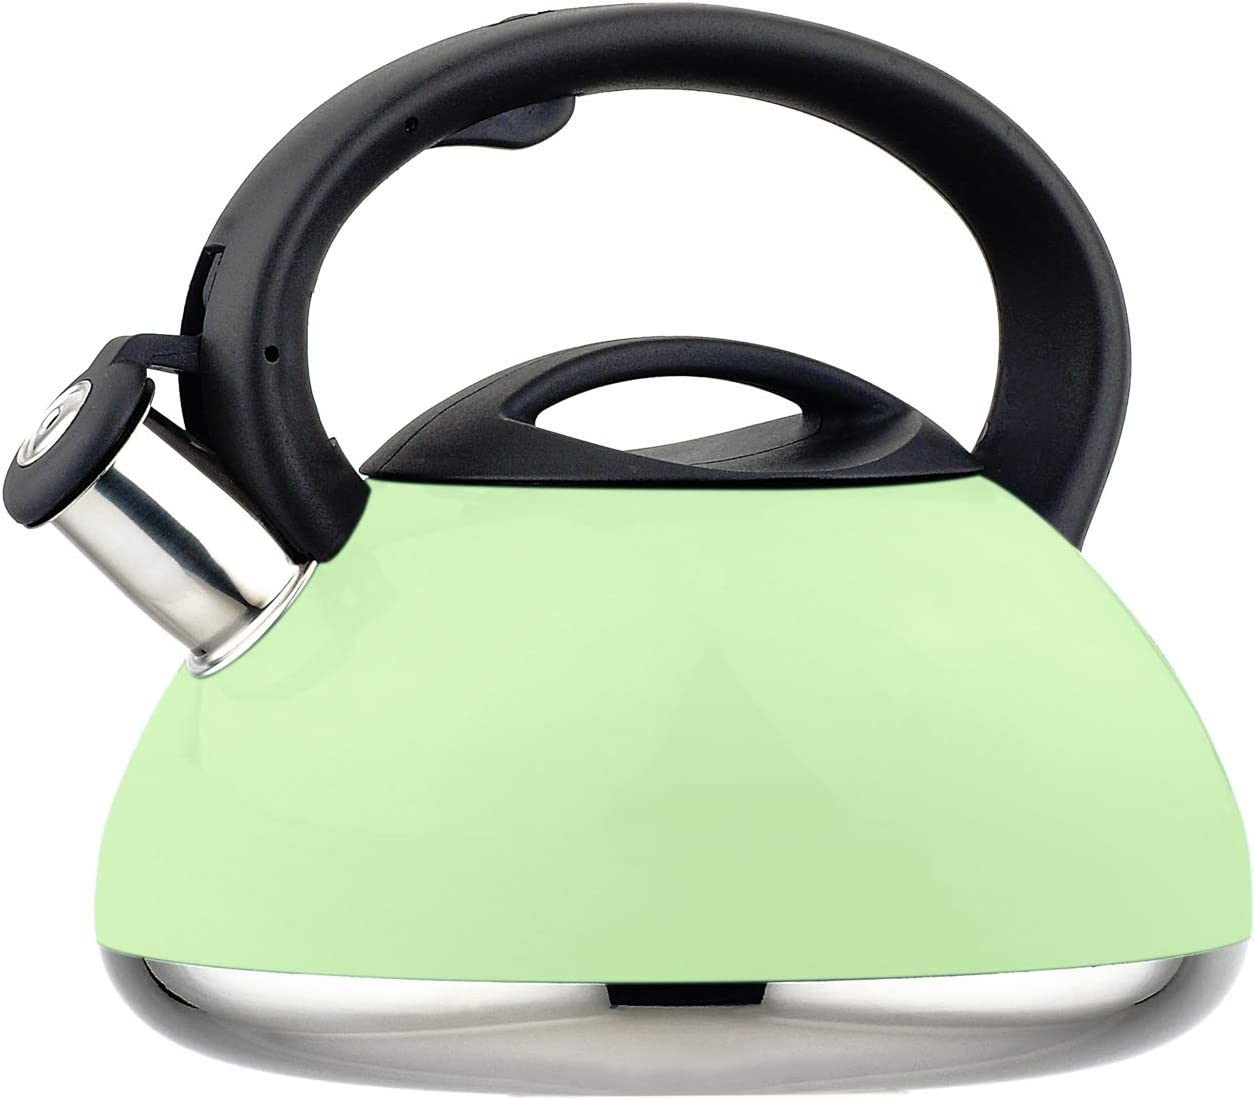 HausRoland Tea Kettle Stainless Steel Whistling 3.2-Quart Stove Top Induction Modern Candy Color Kettle Teapot (GS-04015A-734B, Green)